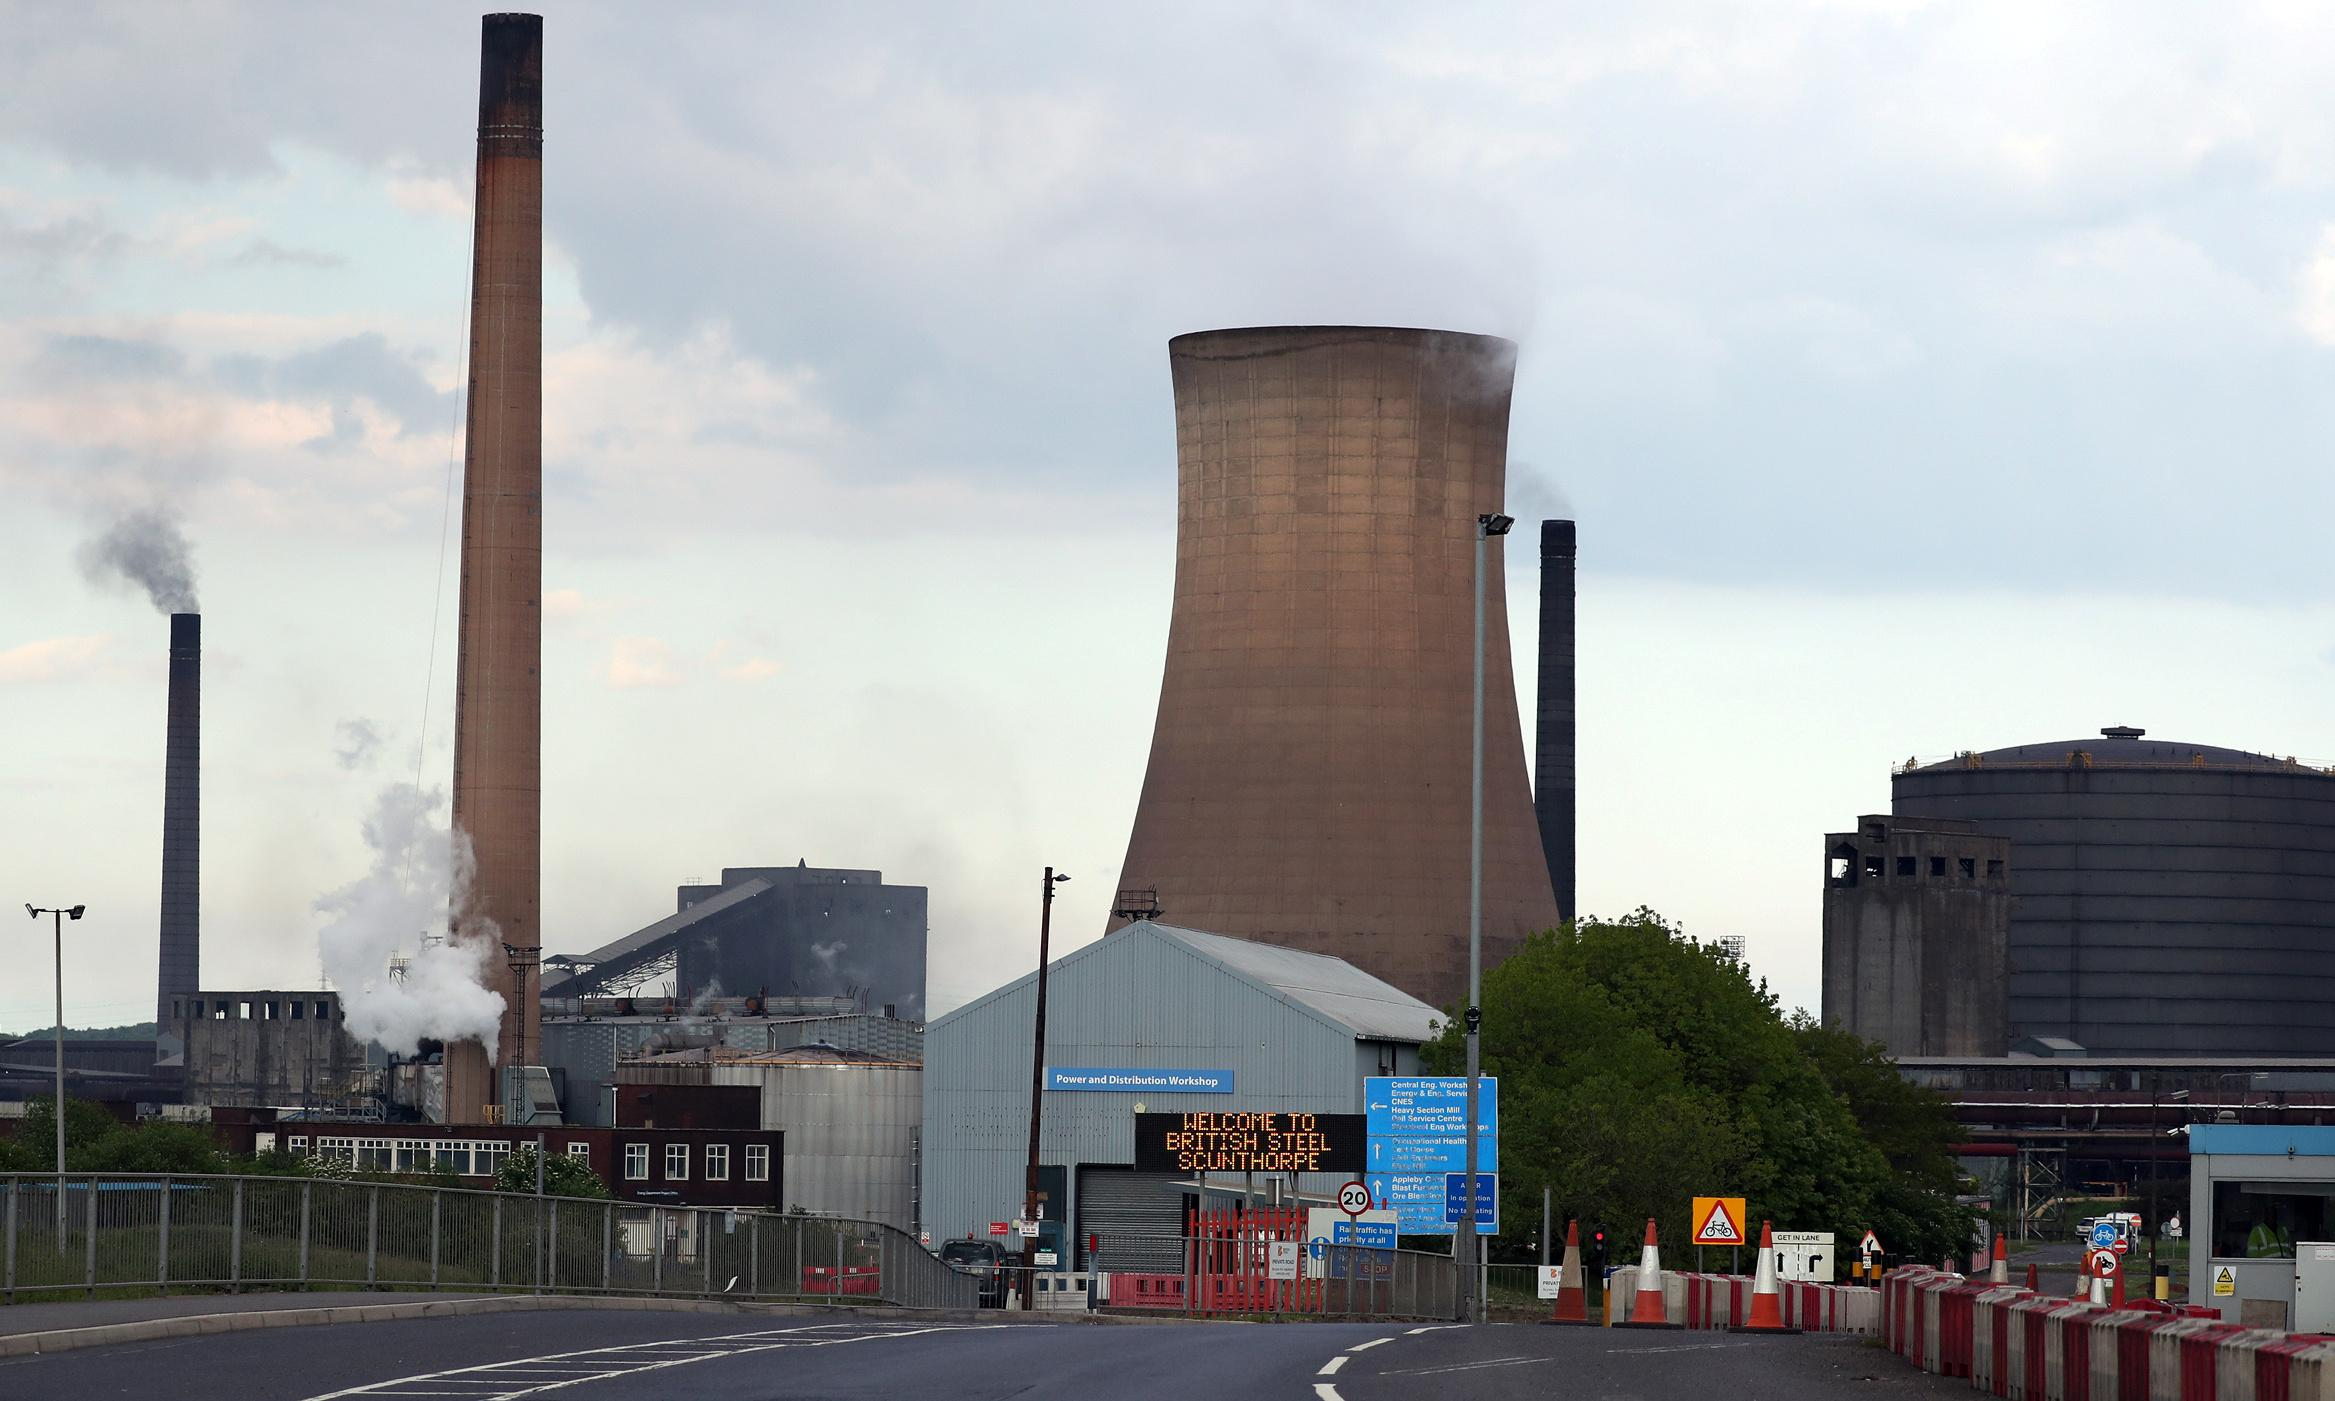 British Steel enters insolvency after rescue talks with government fail